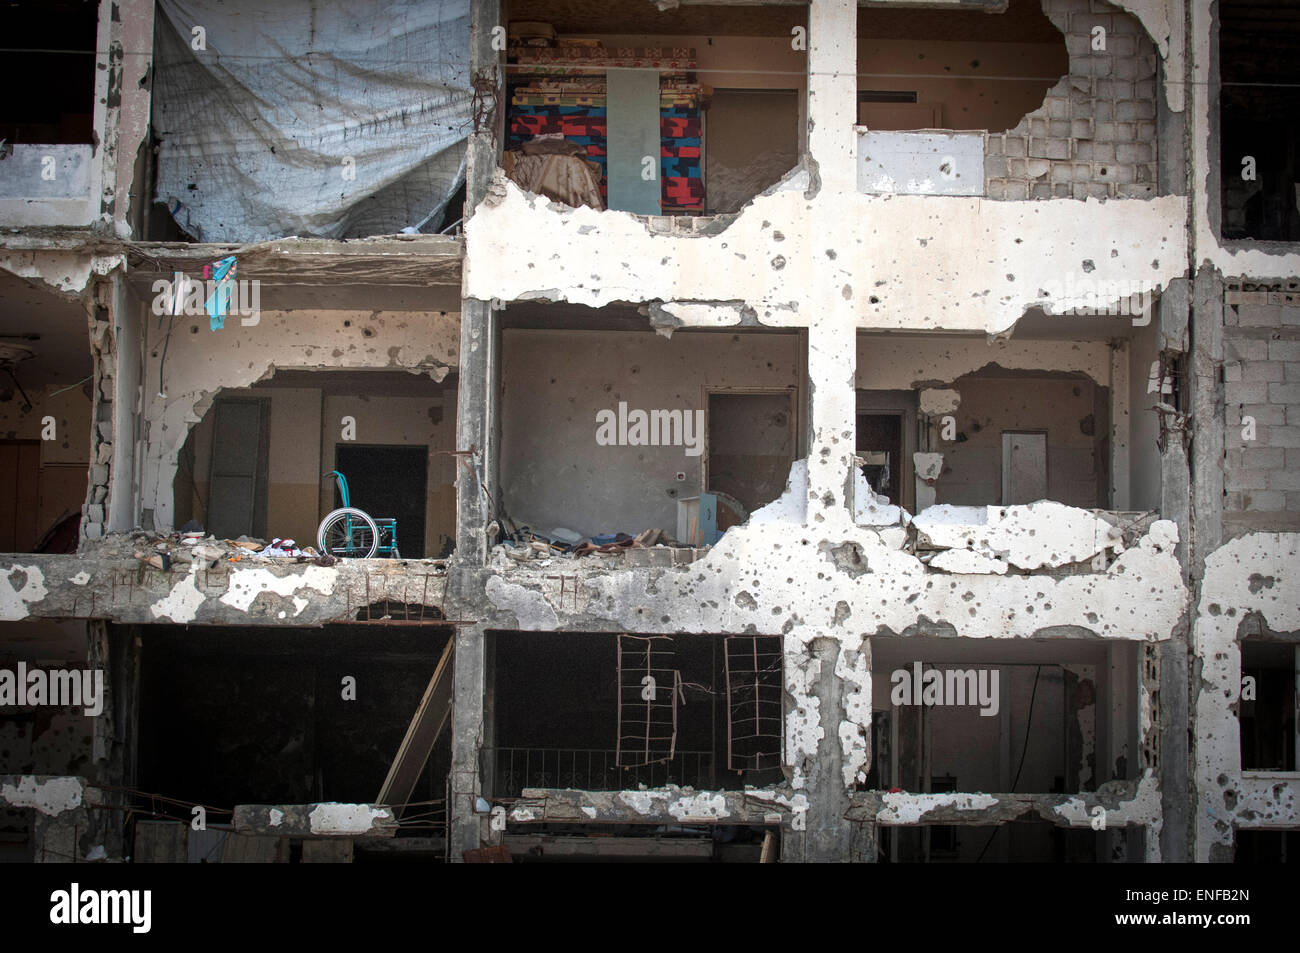 Bomb damage from Israel's 2014 'Operation Protective Edge' hostilities with the Gaza Strip. Beit Hanoun,Gaza - Stock Image